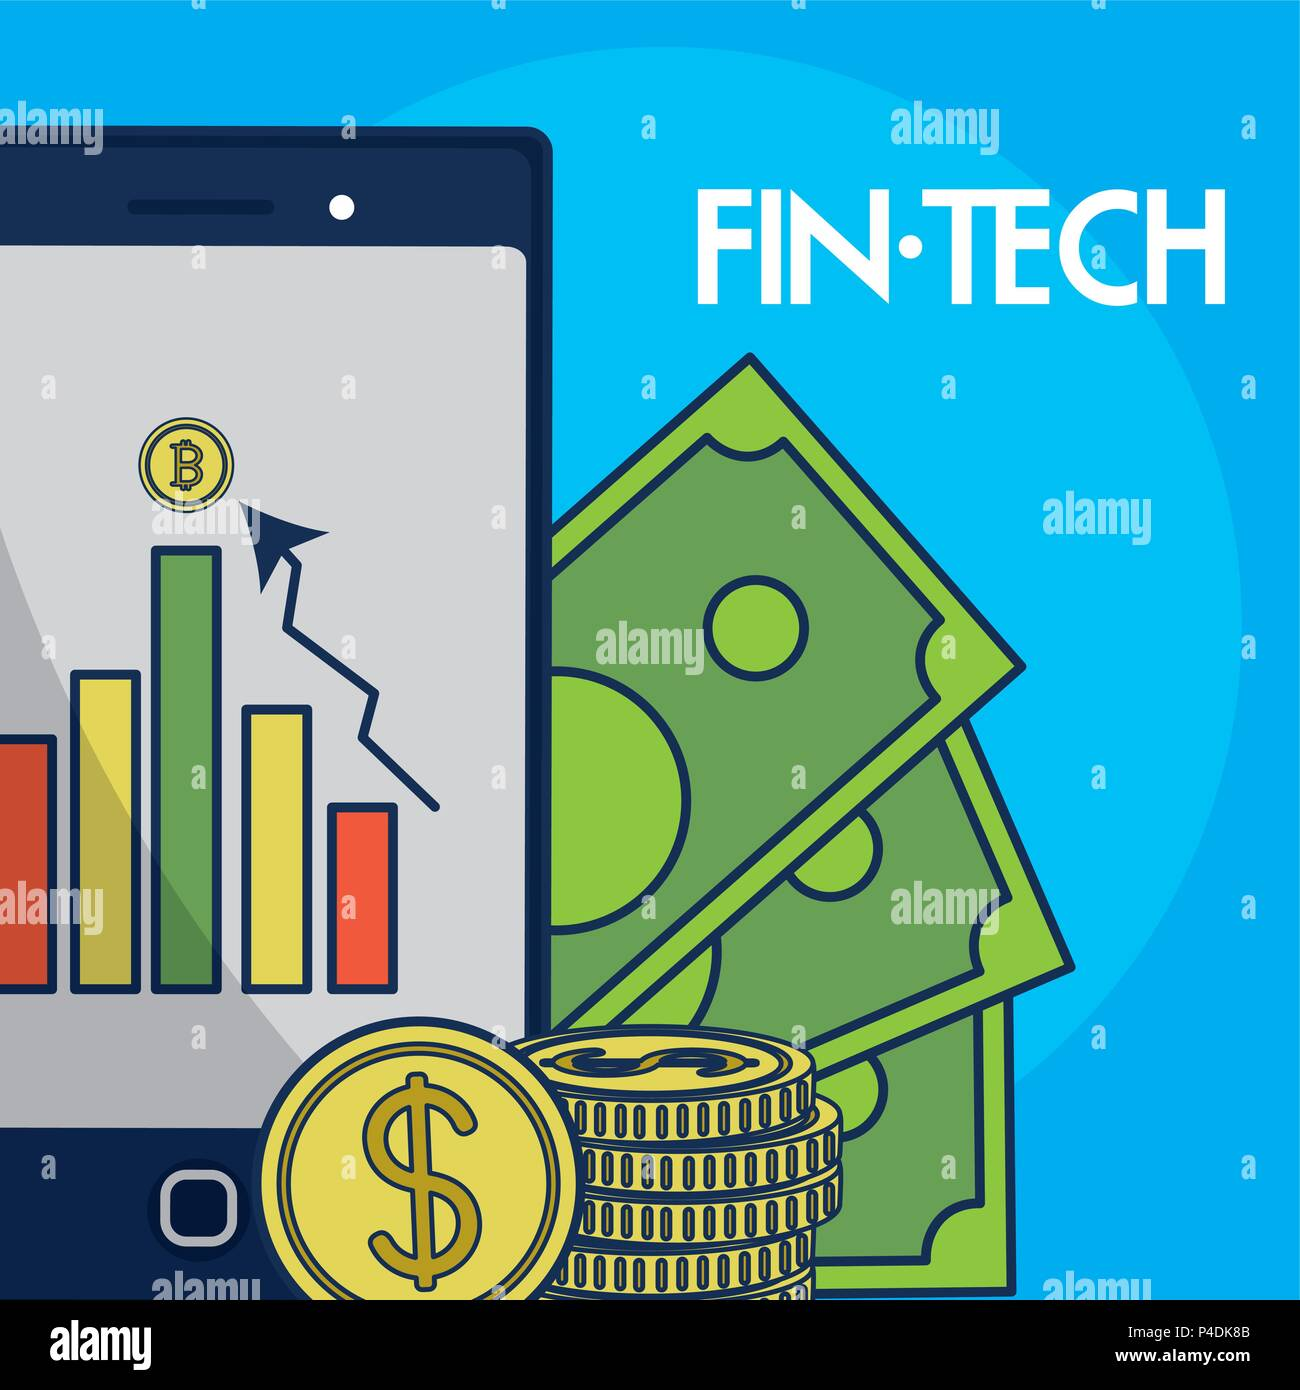 Financial Technolgoy concept - Stock Image